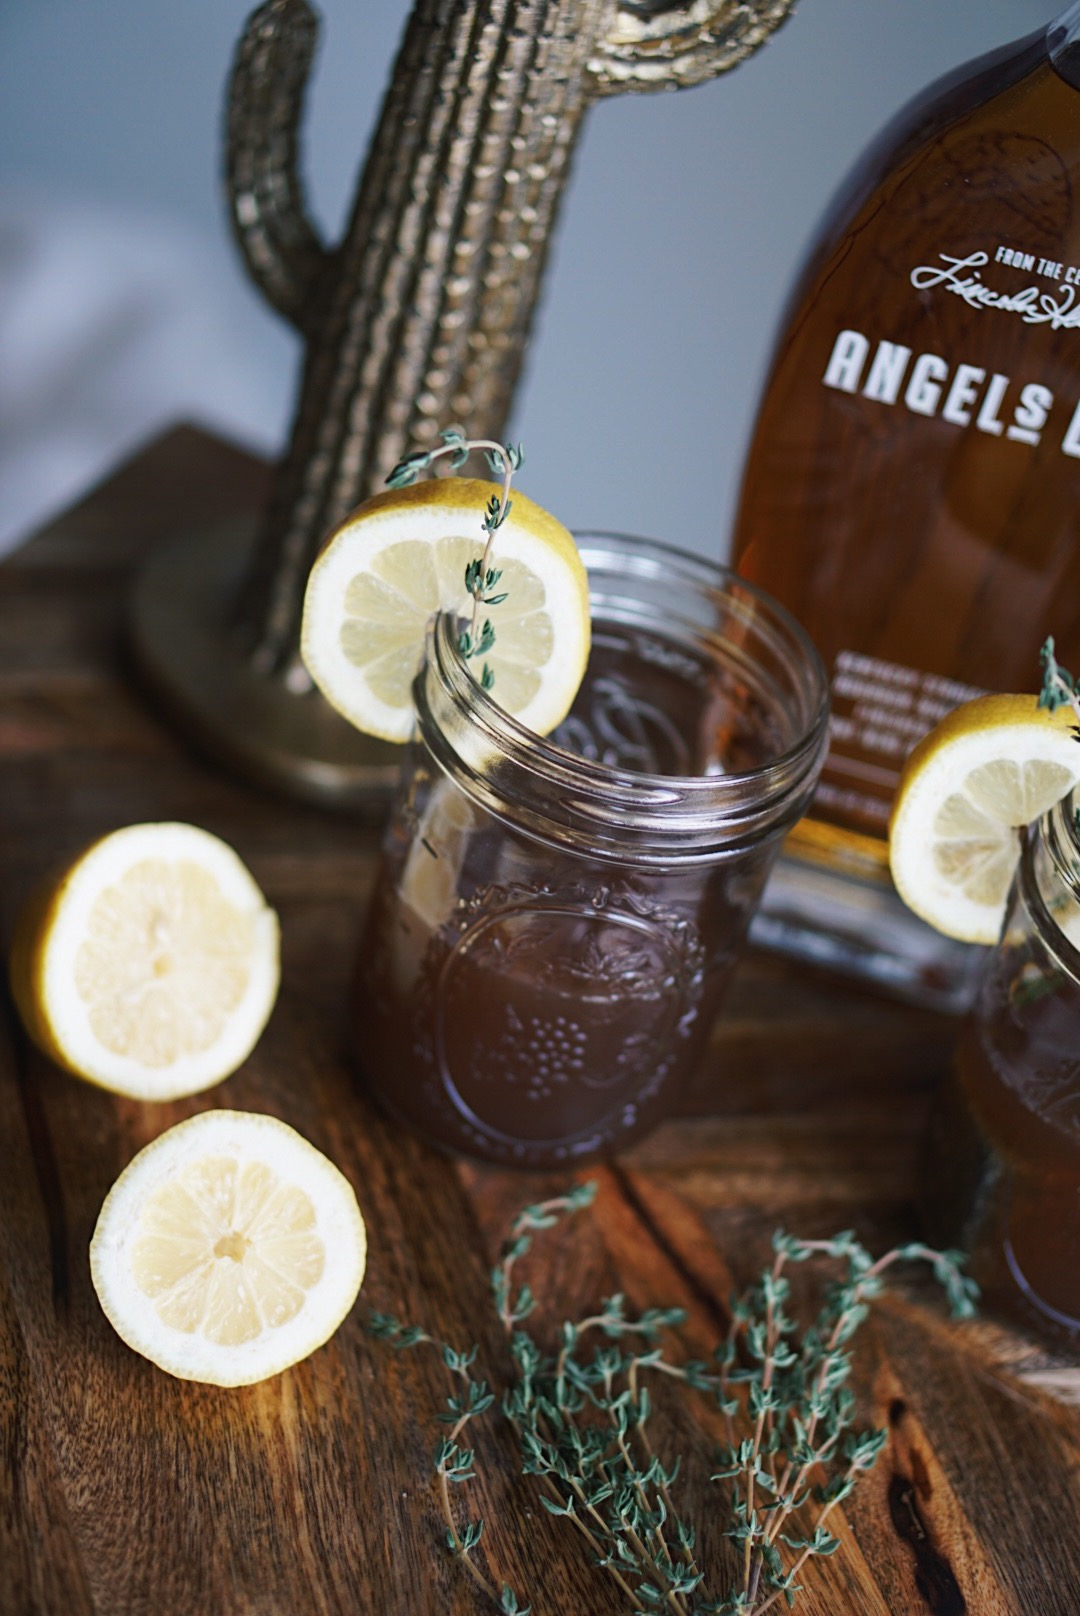 Sugar Love Chic Blogger Krista Perez shares a recipe for a Honey and Thyme Bourbon Cocktail perfect for St. Patrick's Day!